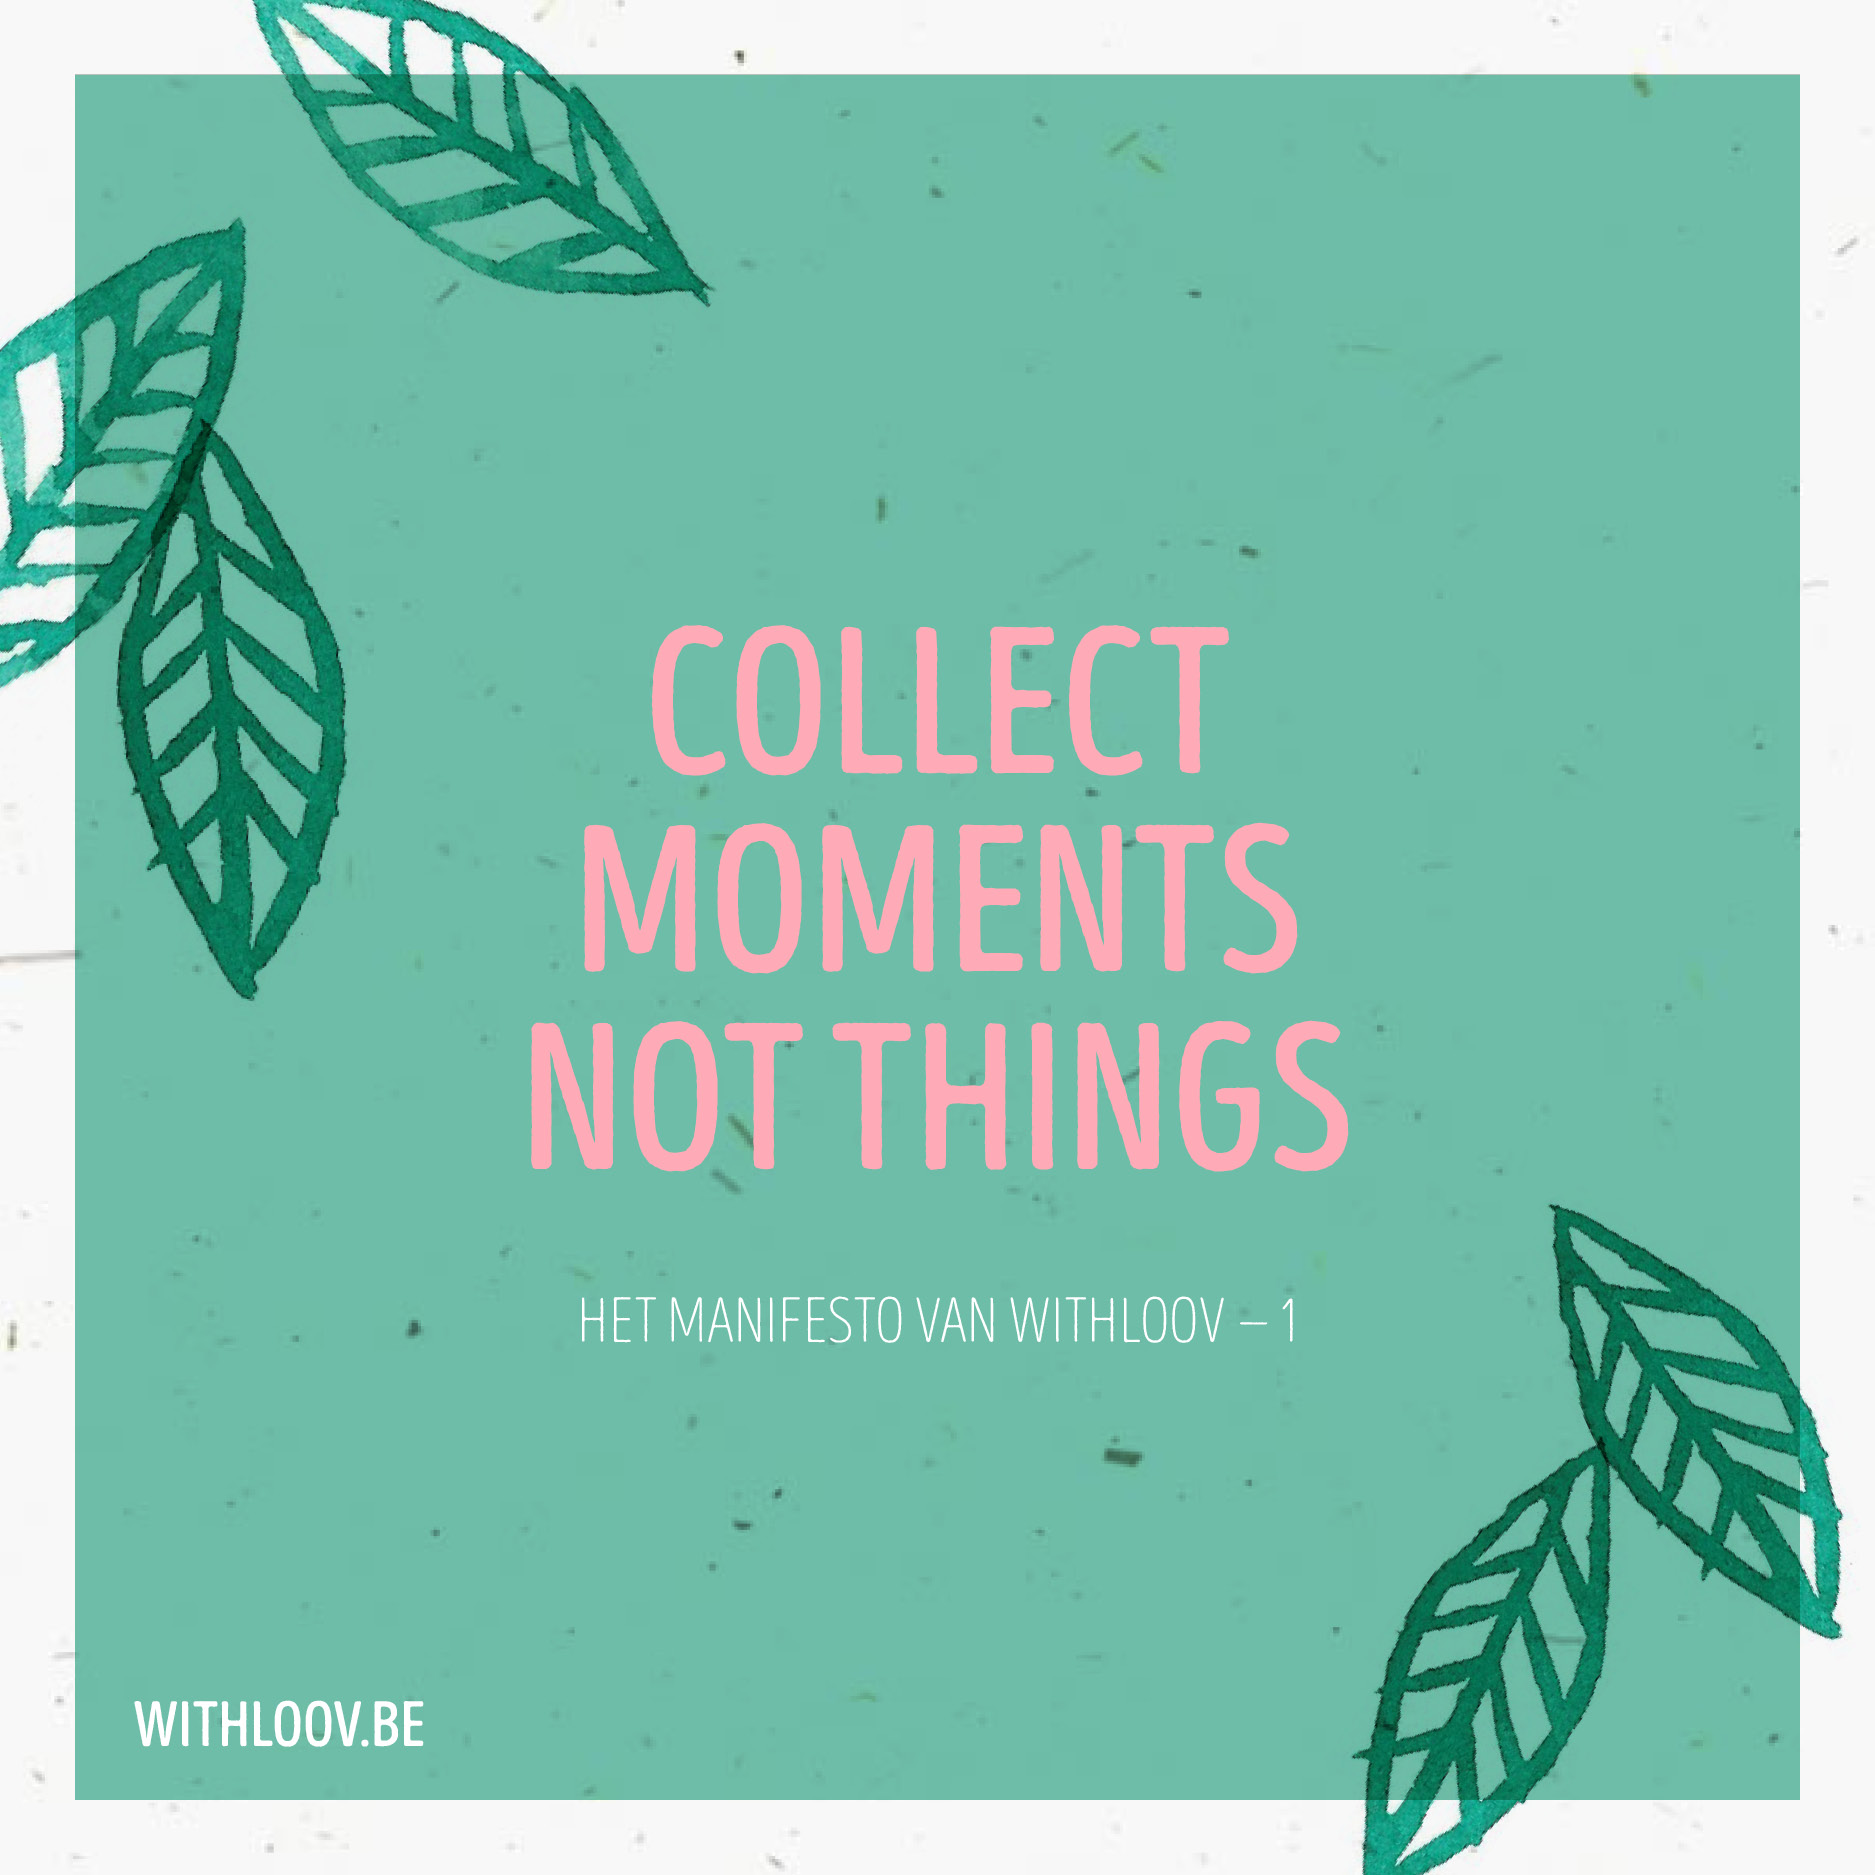 Withloov manifesto Collect moments not things